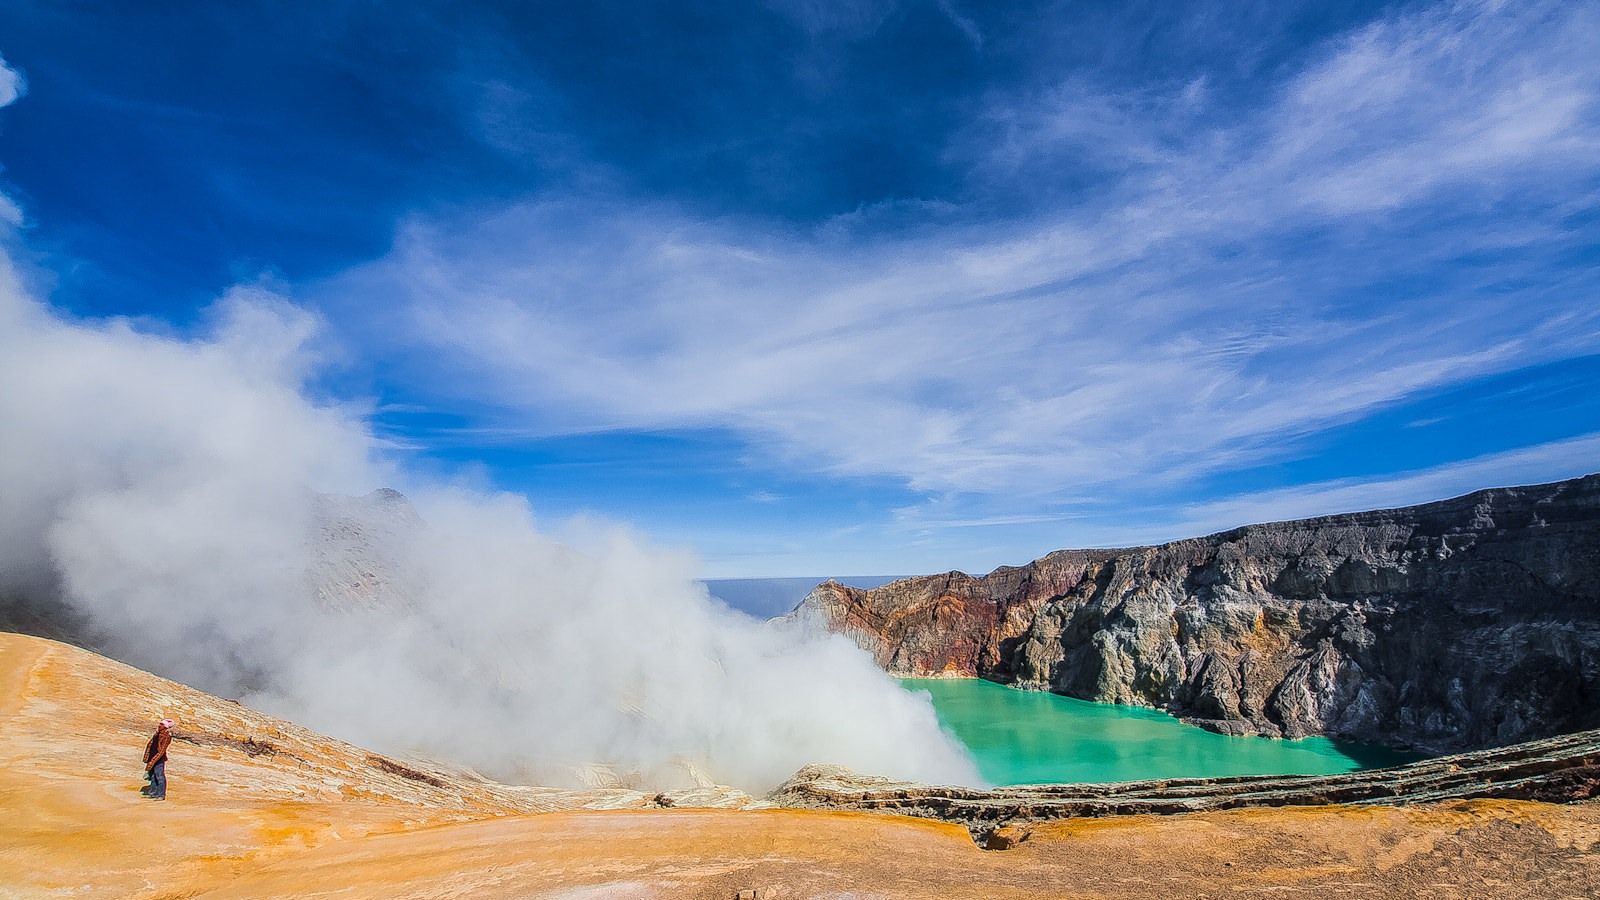 Photograph Ijen Crater by Rose Kampoong on 500px